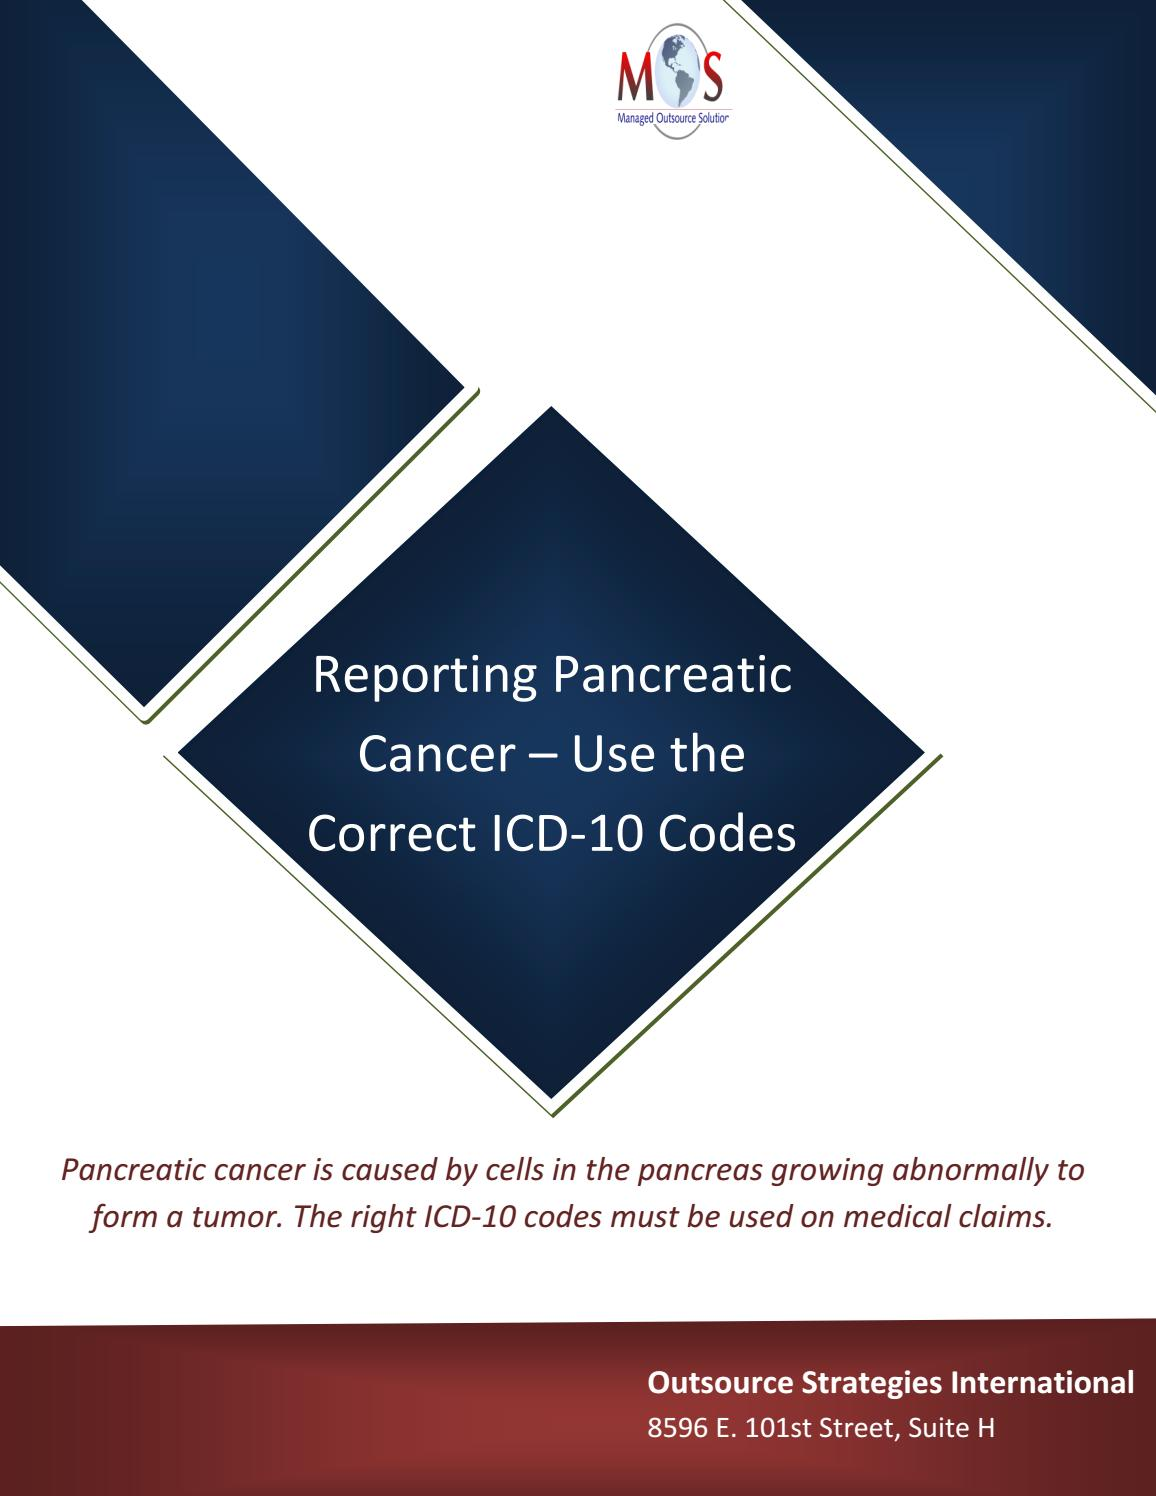 cancer pancreatic icd 10 helmintox sirop notice